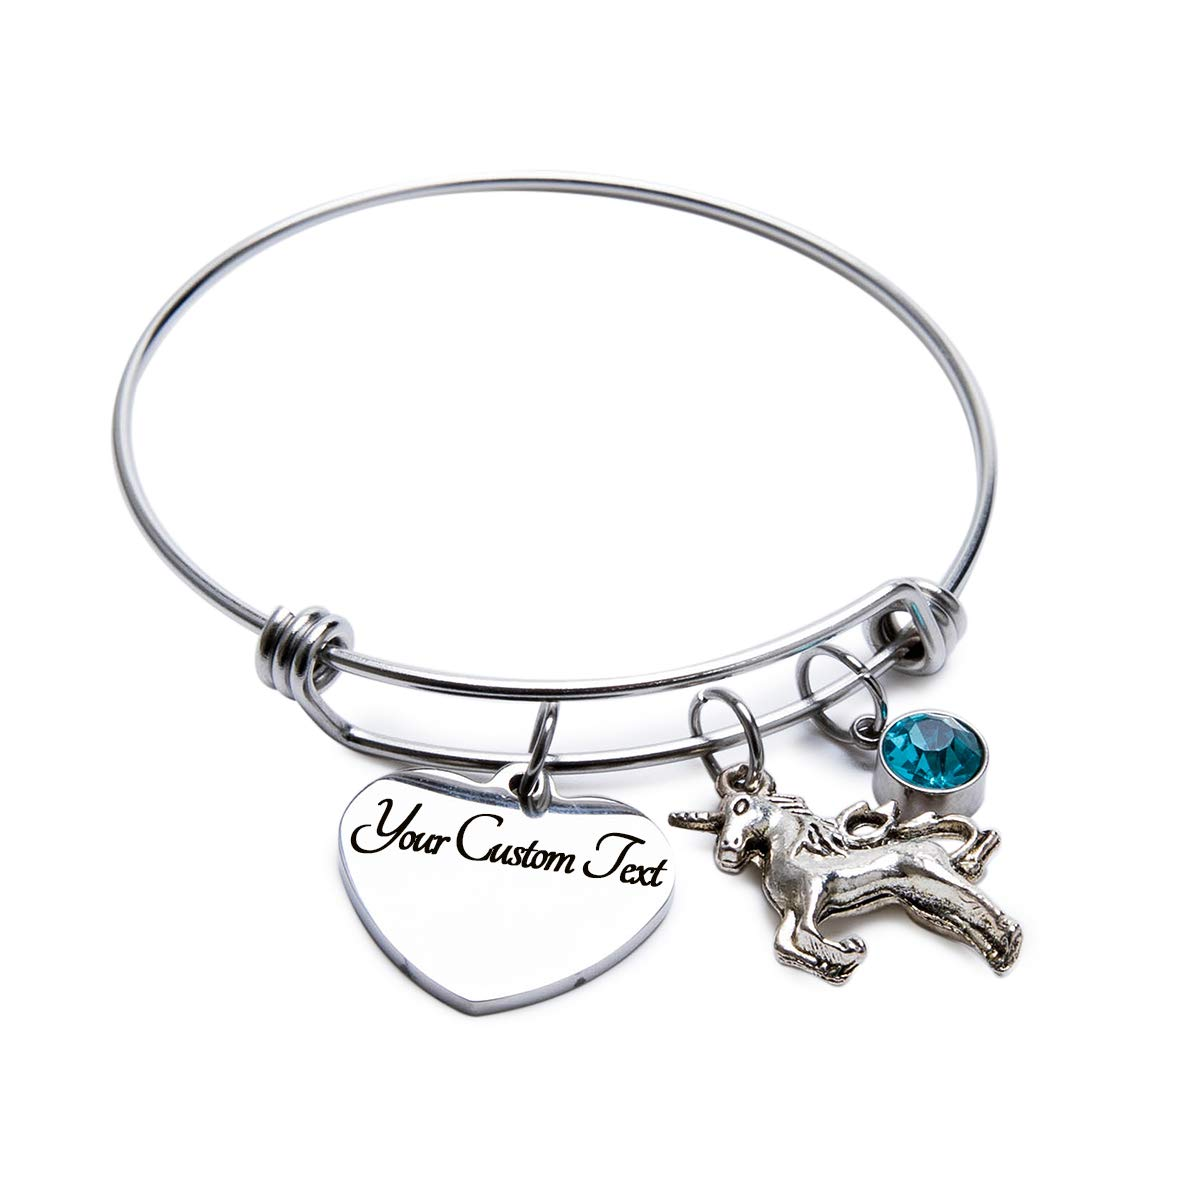 Fanery Sue Personalized Bangle Cuff Expandable Heart Charm Unicorn Bracelet Custom Engraved Name Message Choose Your Birthstone